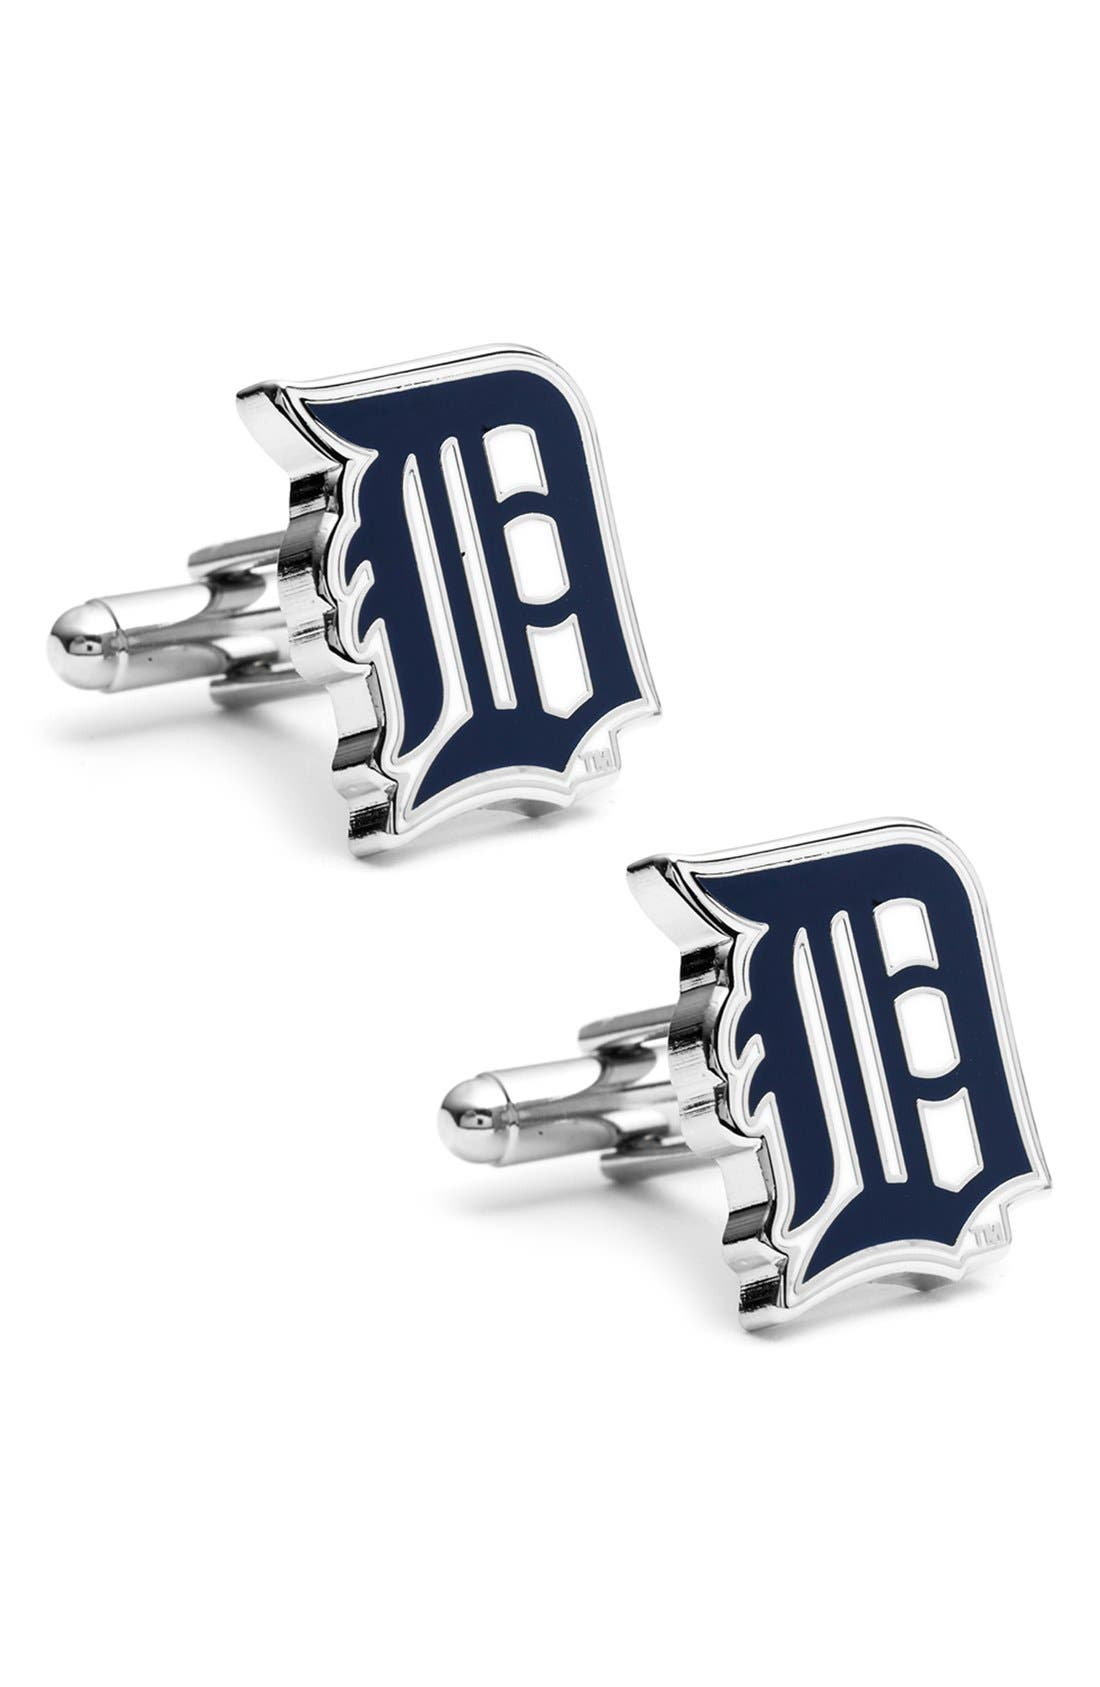 'Detroit Tigers' Cuff Links,                             Main thumbnail 1, color,                             400